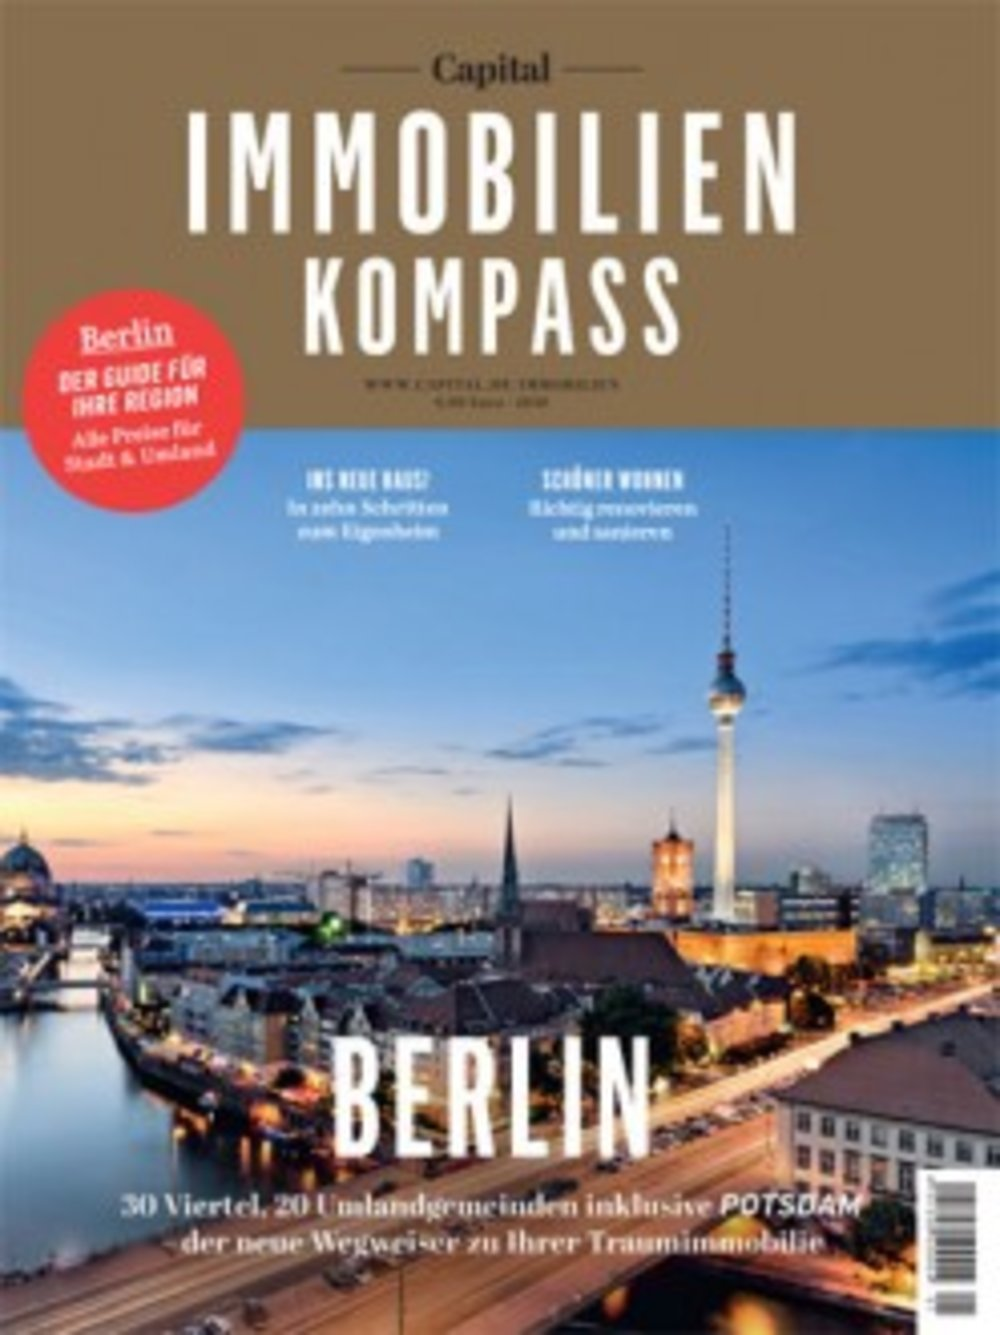 CAPITAL Immobilienkompass 2018: Berlin